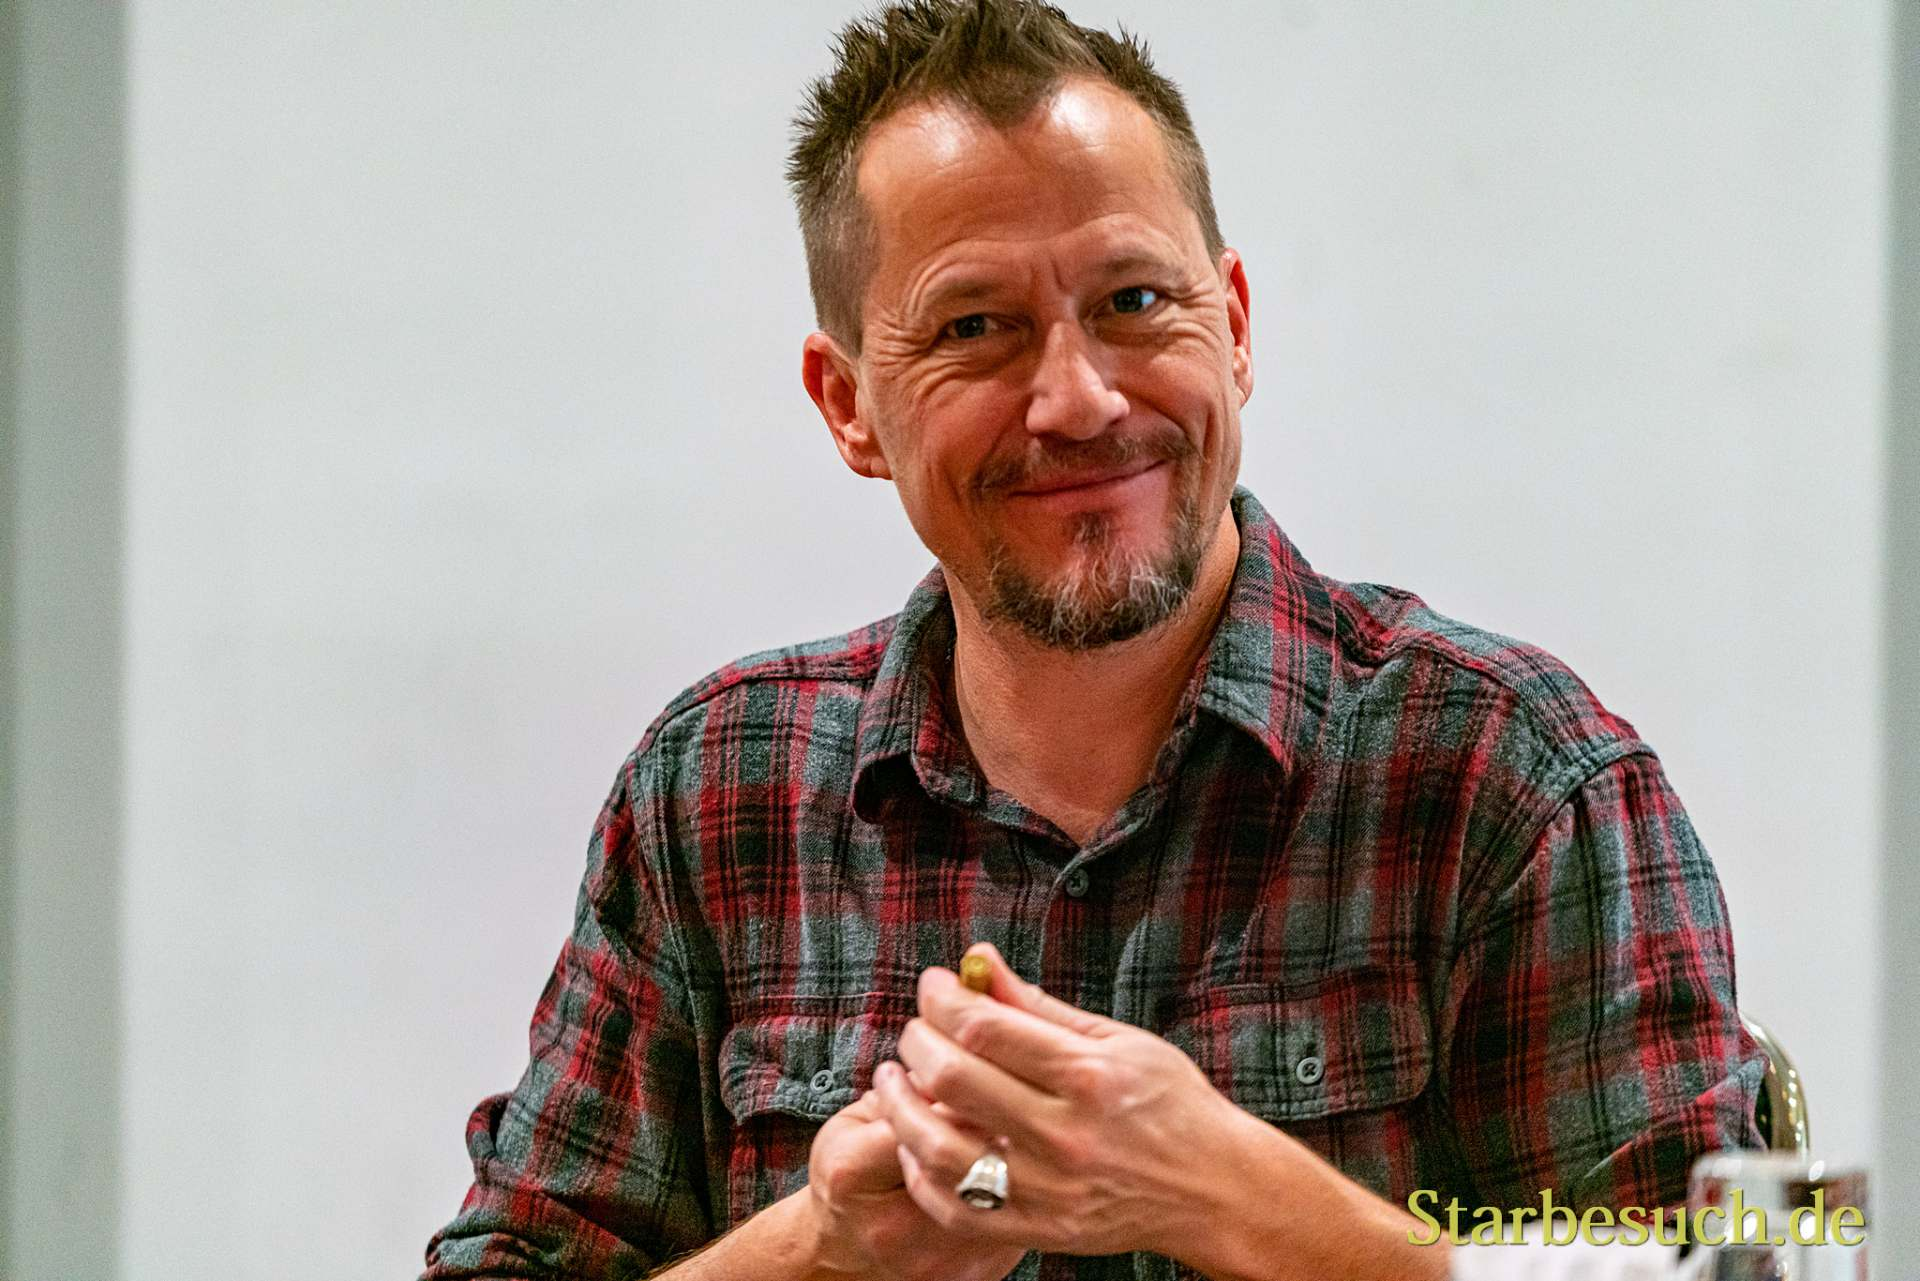 Bonn, Germany - June 8 2019: Corin Nemec (*1971, American actor - Stargate SG-1) signing autographs for fans at FedCon 28, a four day sci-fi convention. FedCon 28 took place Jun 7-10 2019.